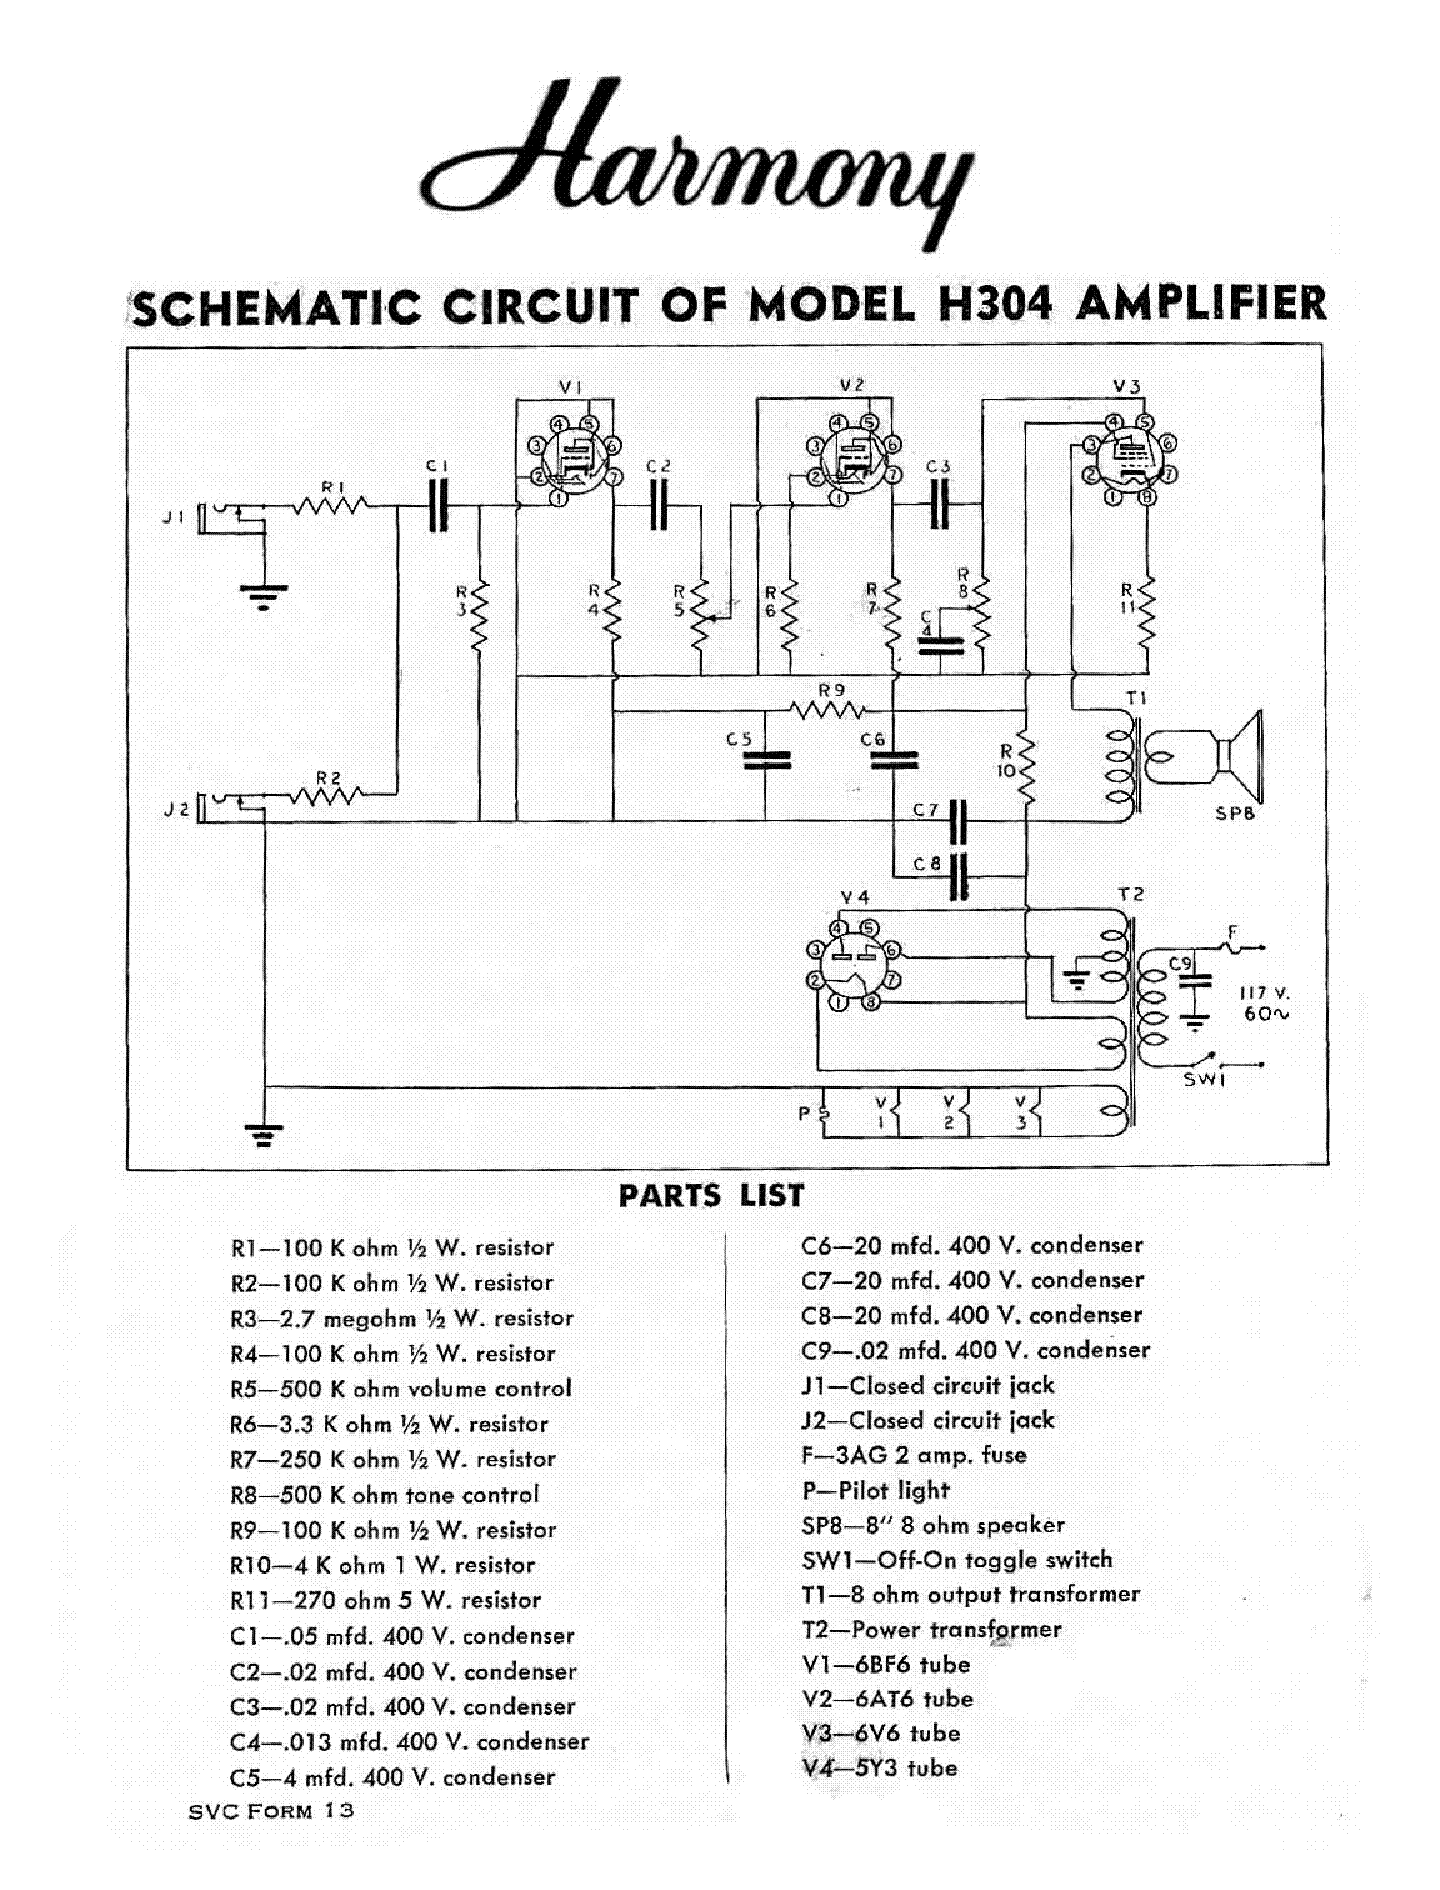 HARMONY H304 SCH service manual (1st page)